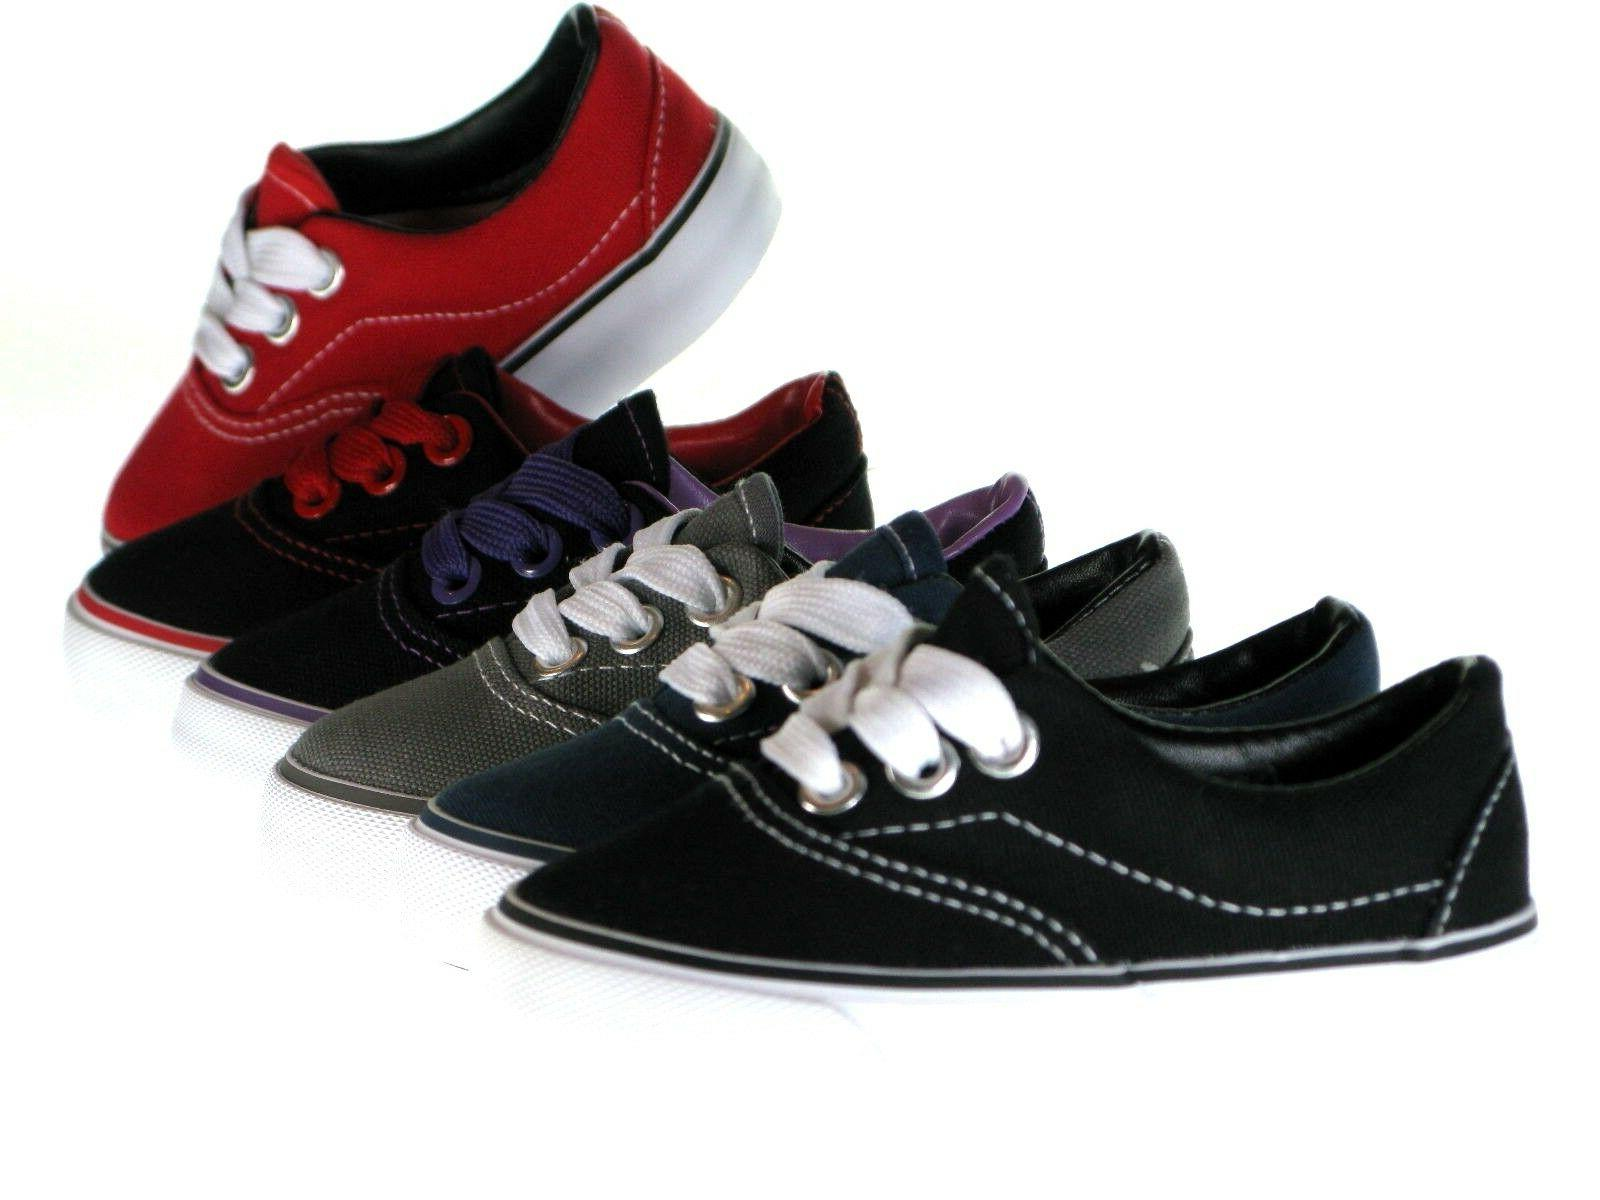 New Lace Up Low Top Boys Or Shoes